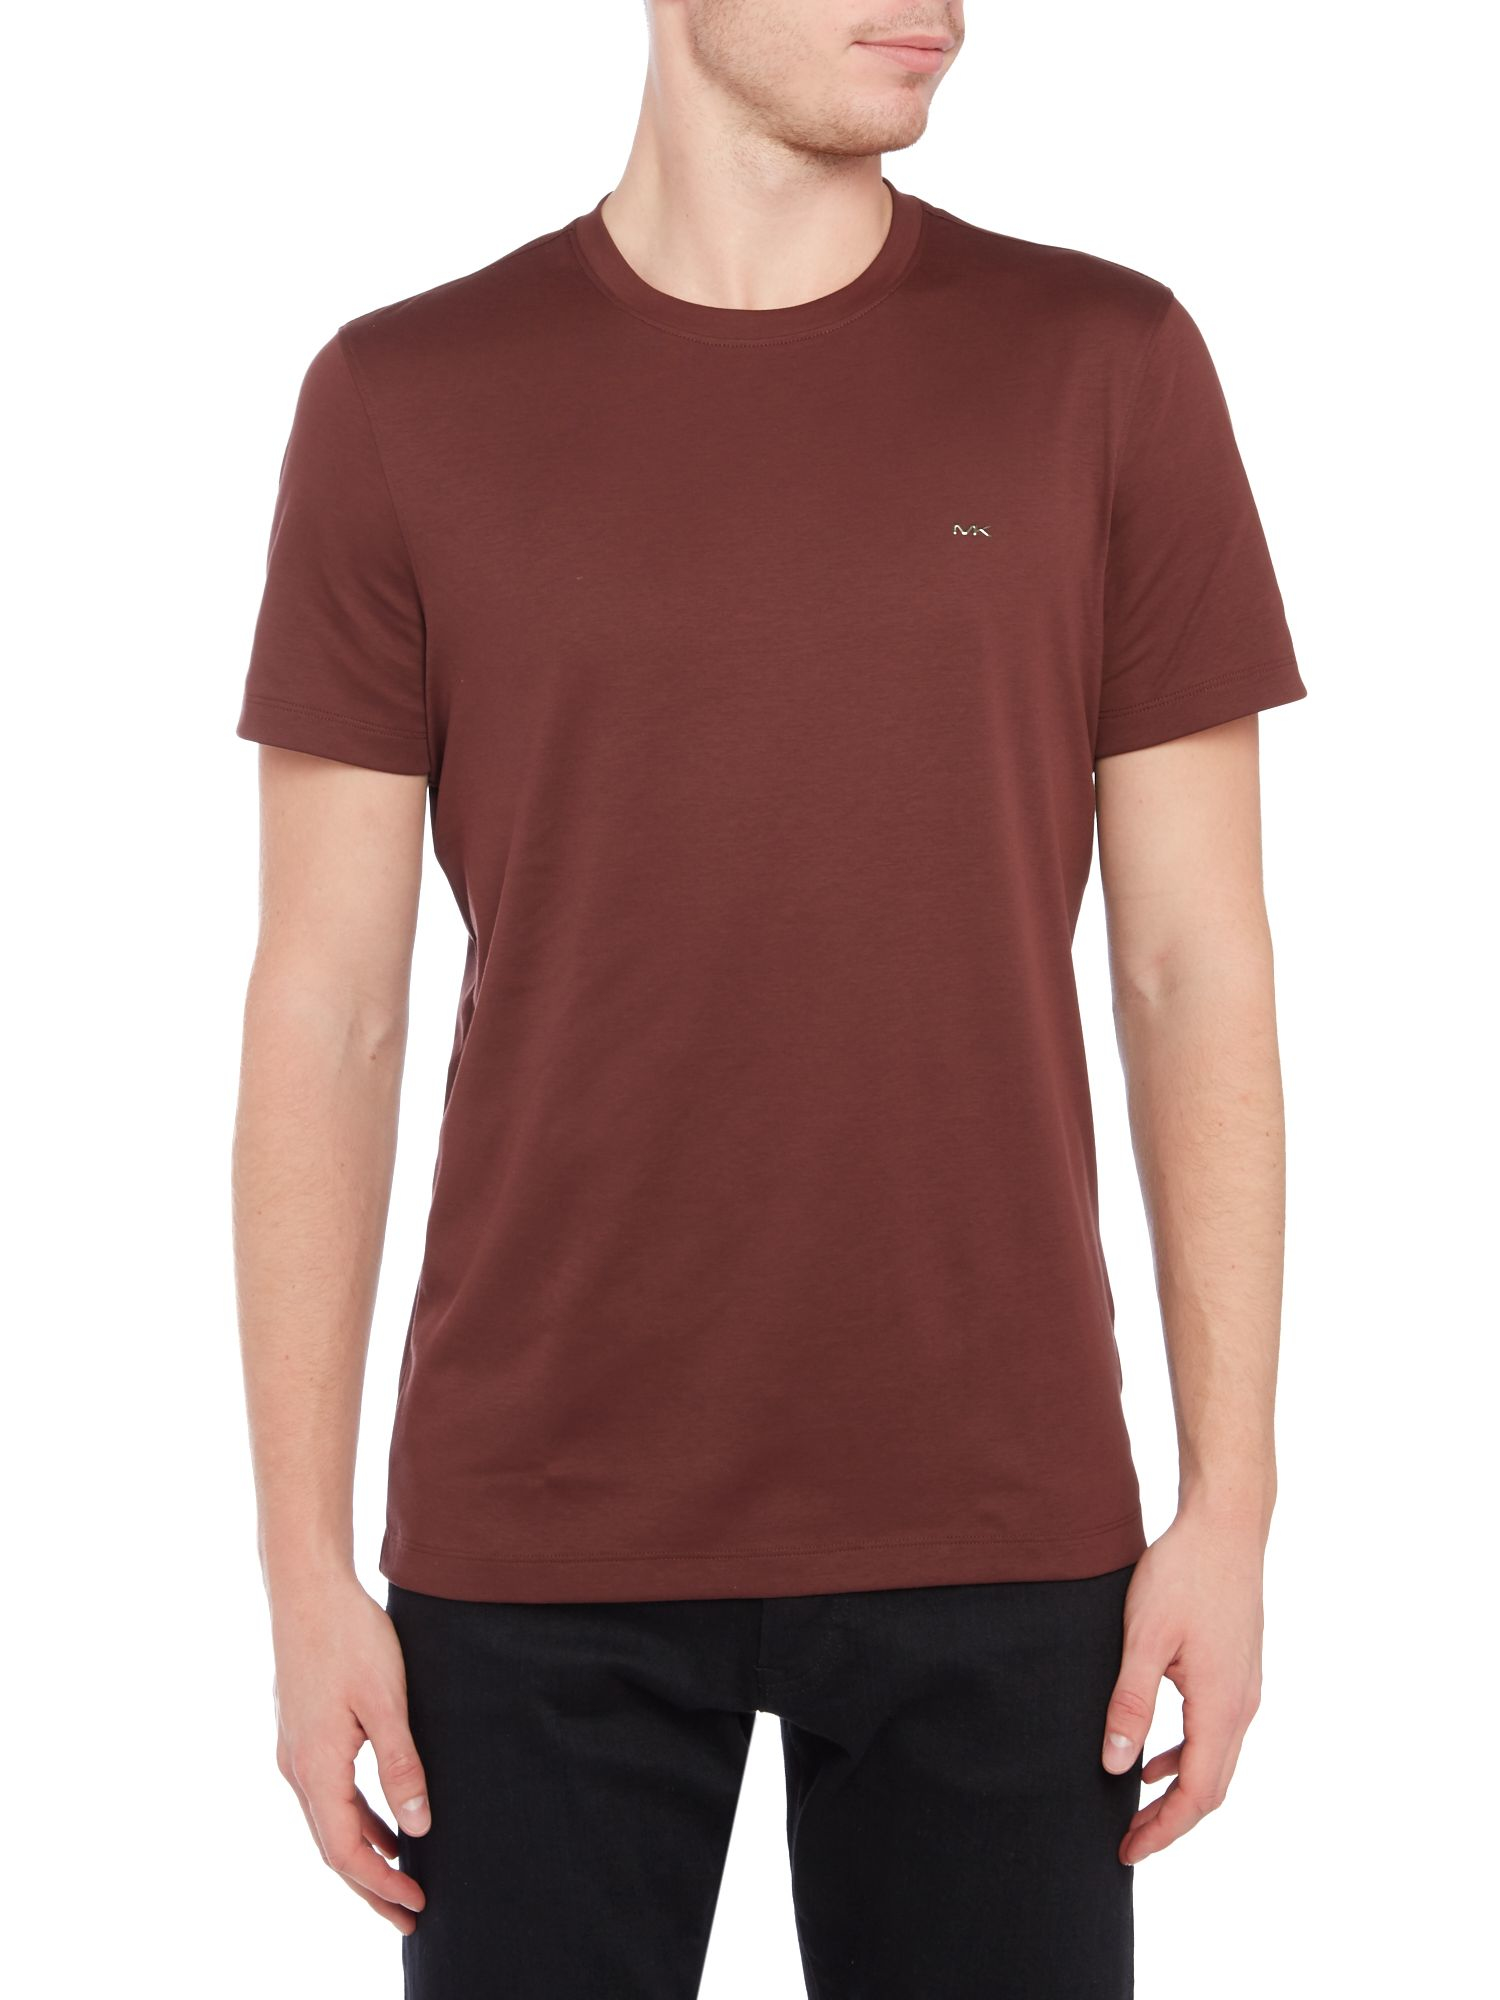 Michael Kors clothes for men at Macy's come in all styles and sizes. Shop men's Michael Kors and get free shipping w/minimum purchase!